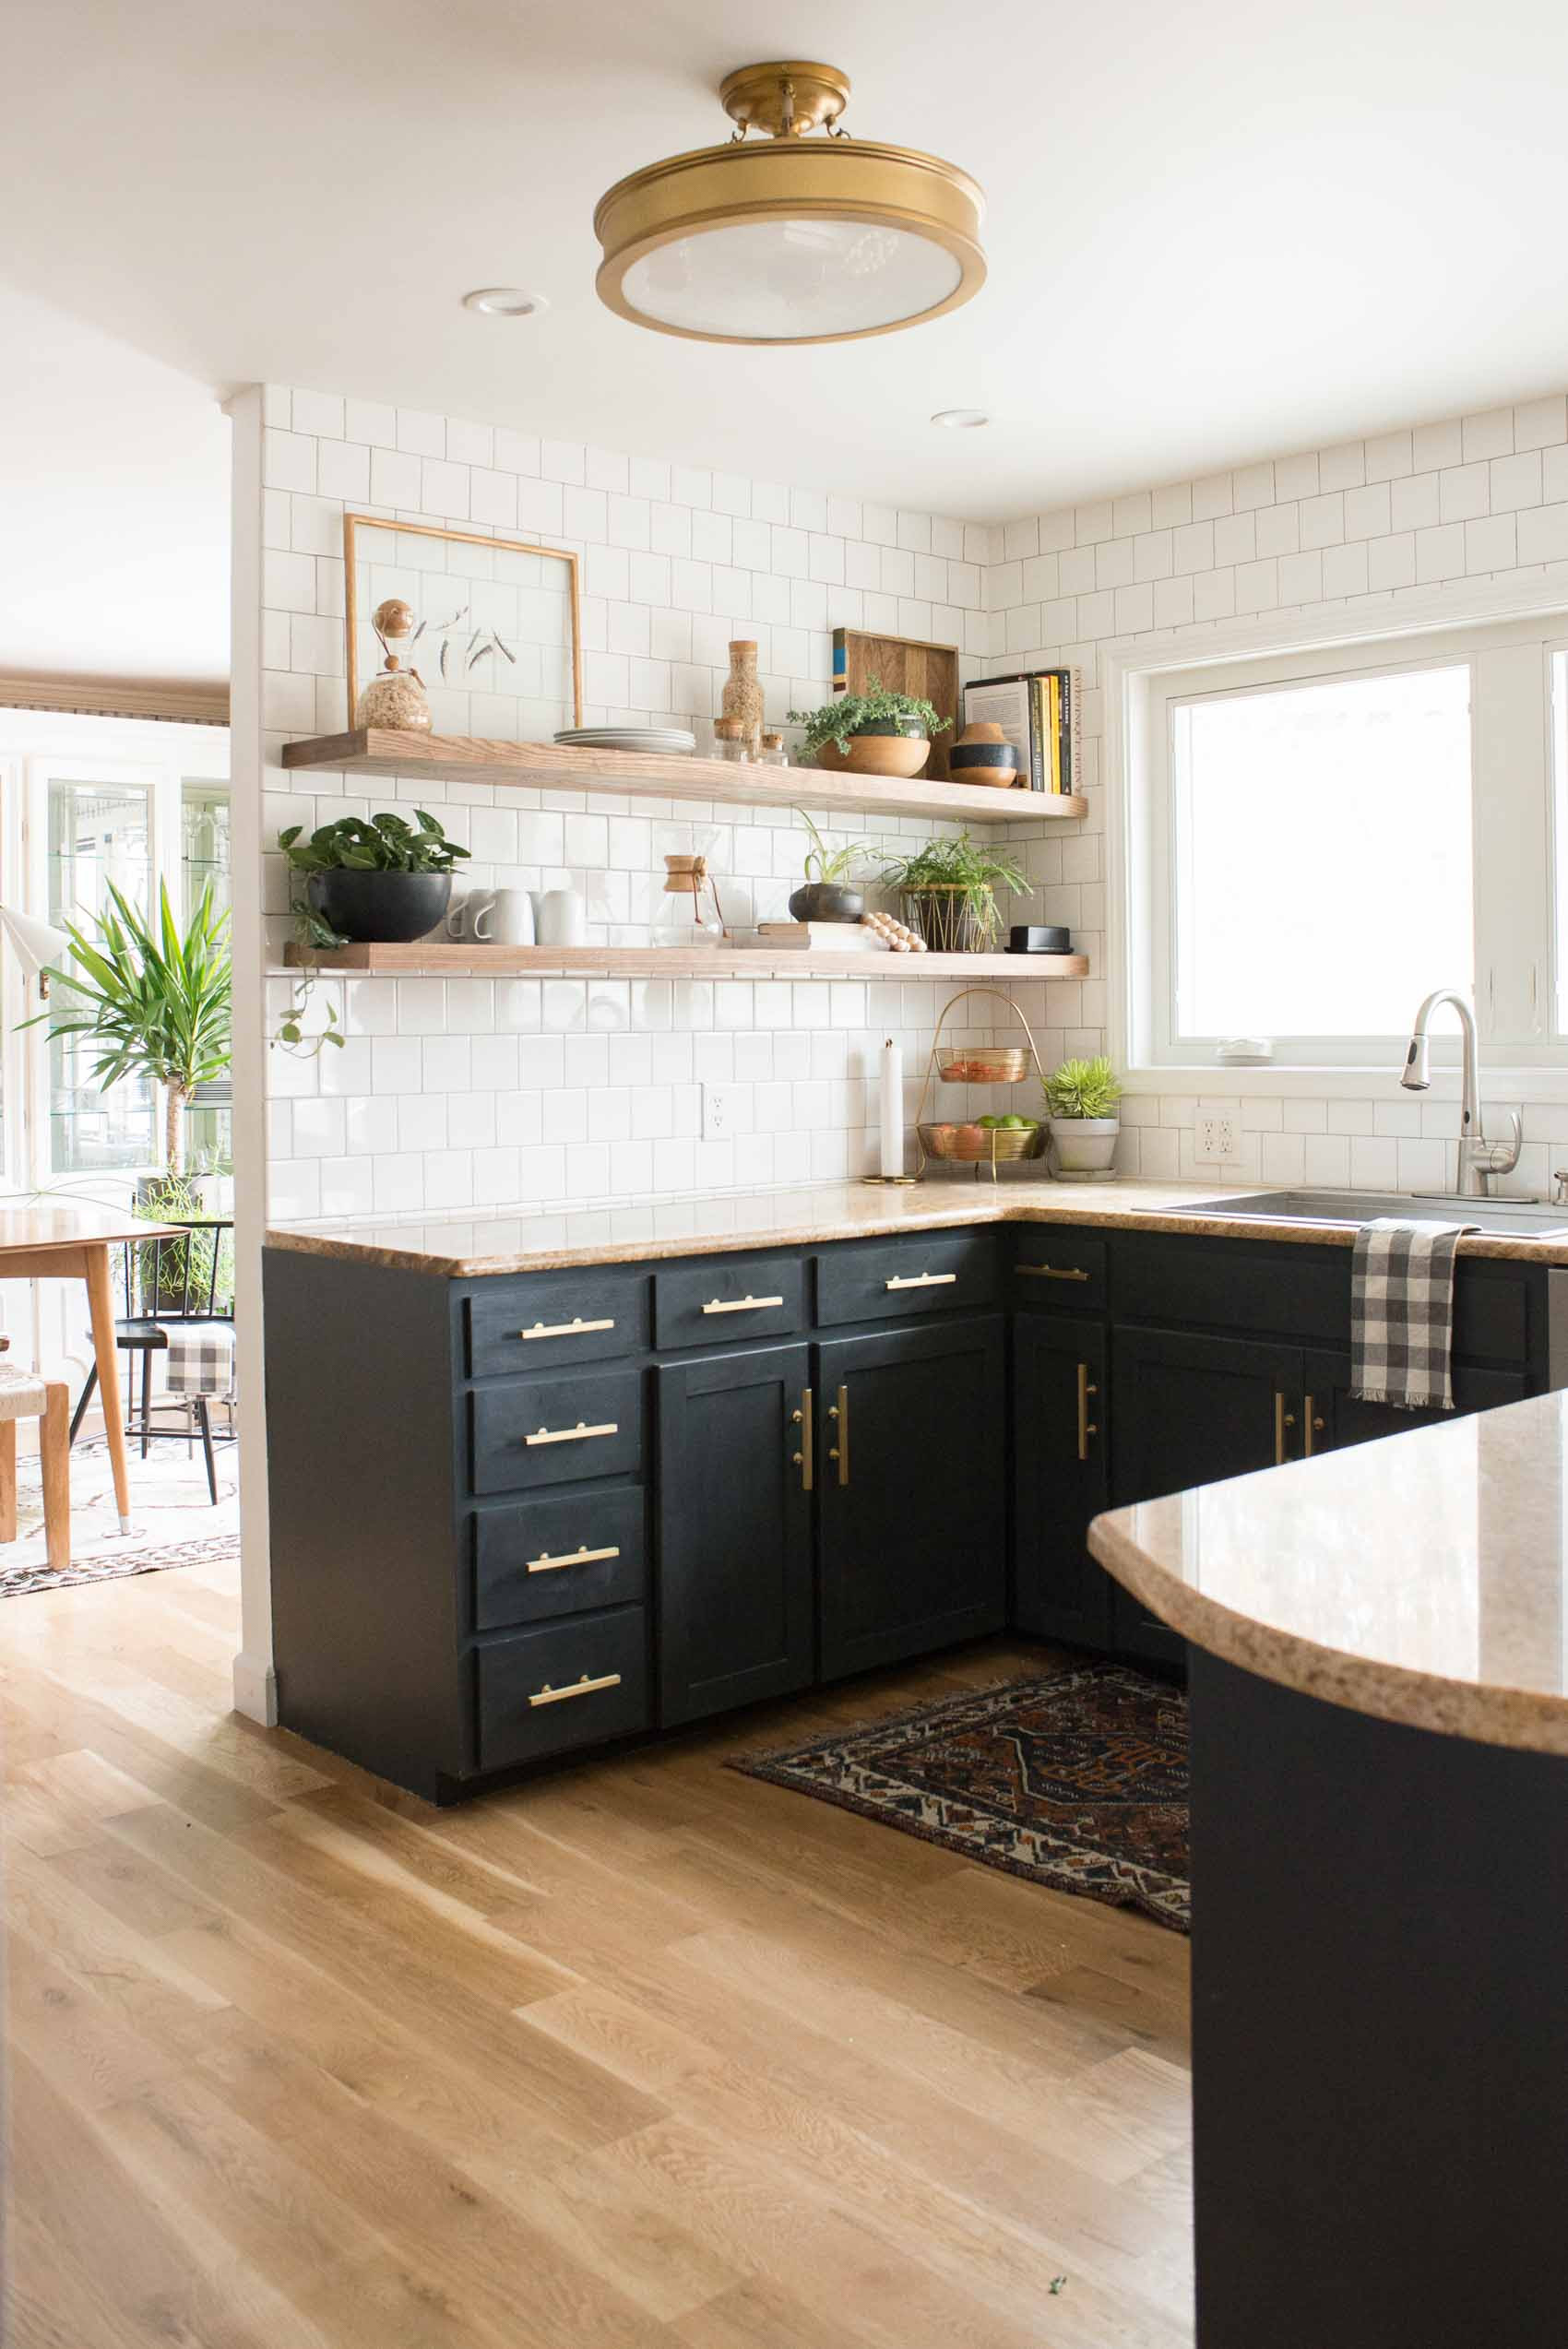 Before & After: A Budget-Conscious Kitchen and Dining Room ...